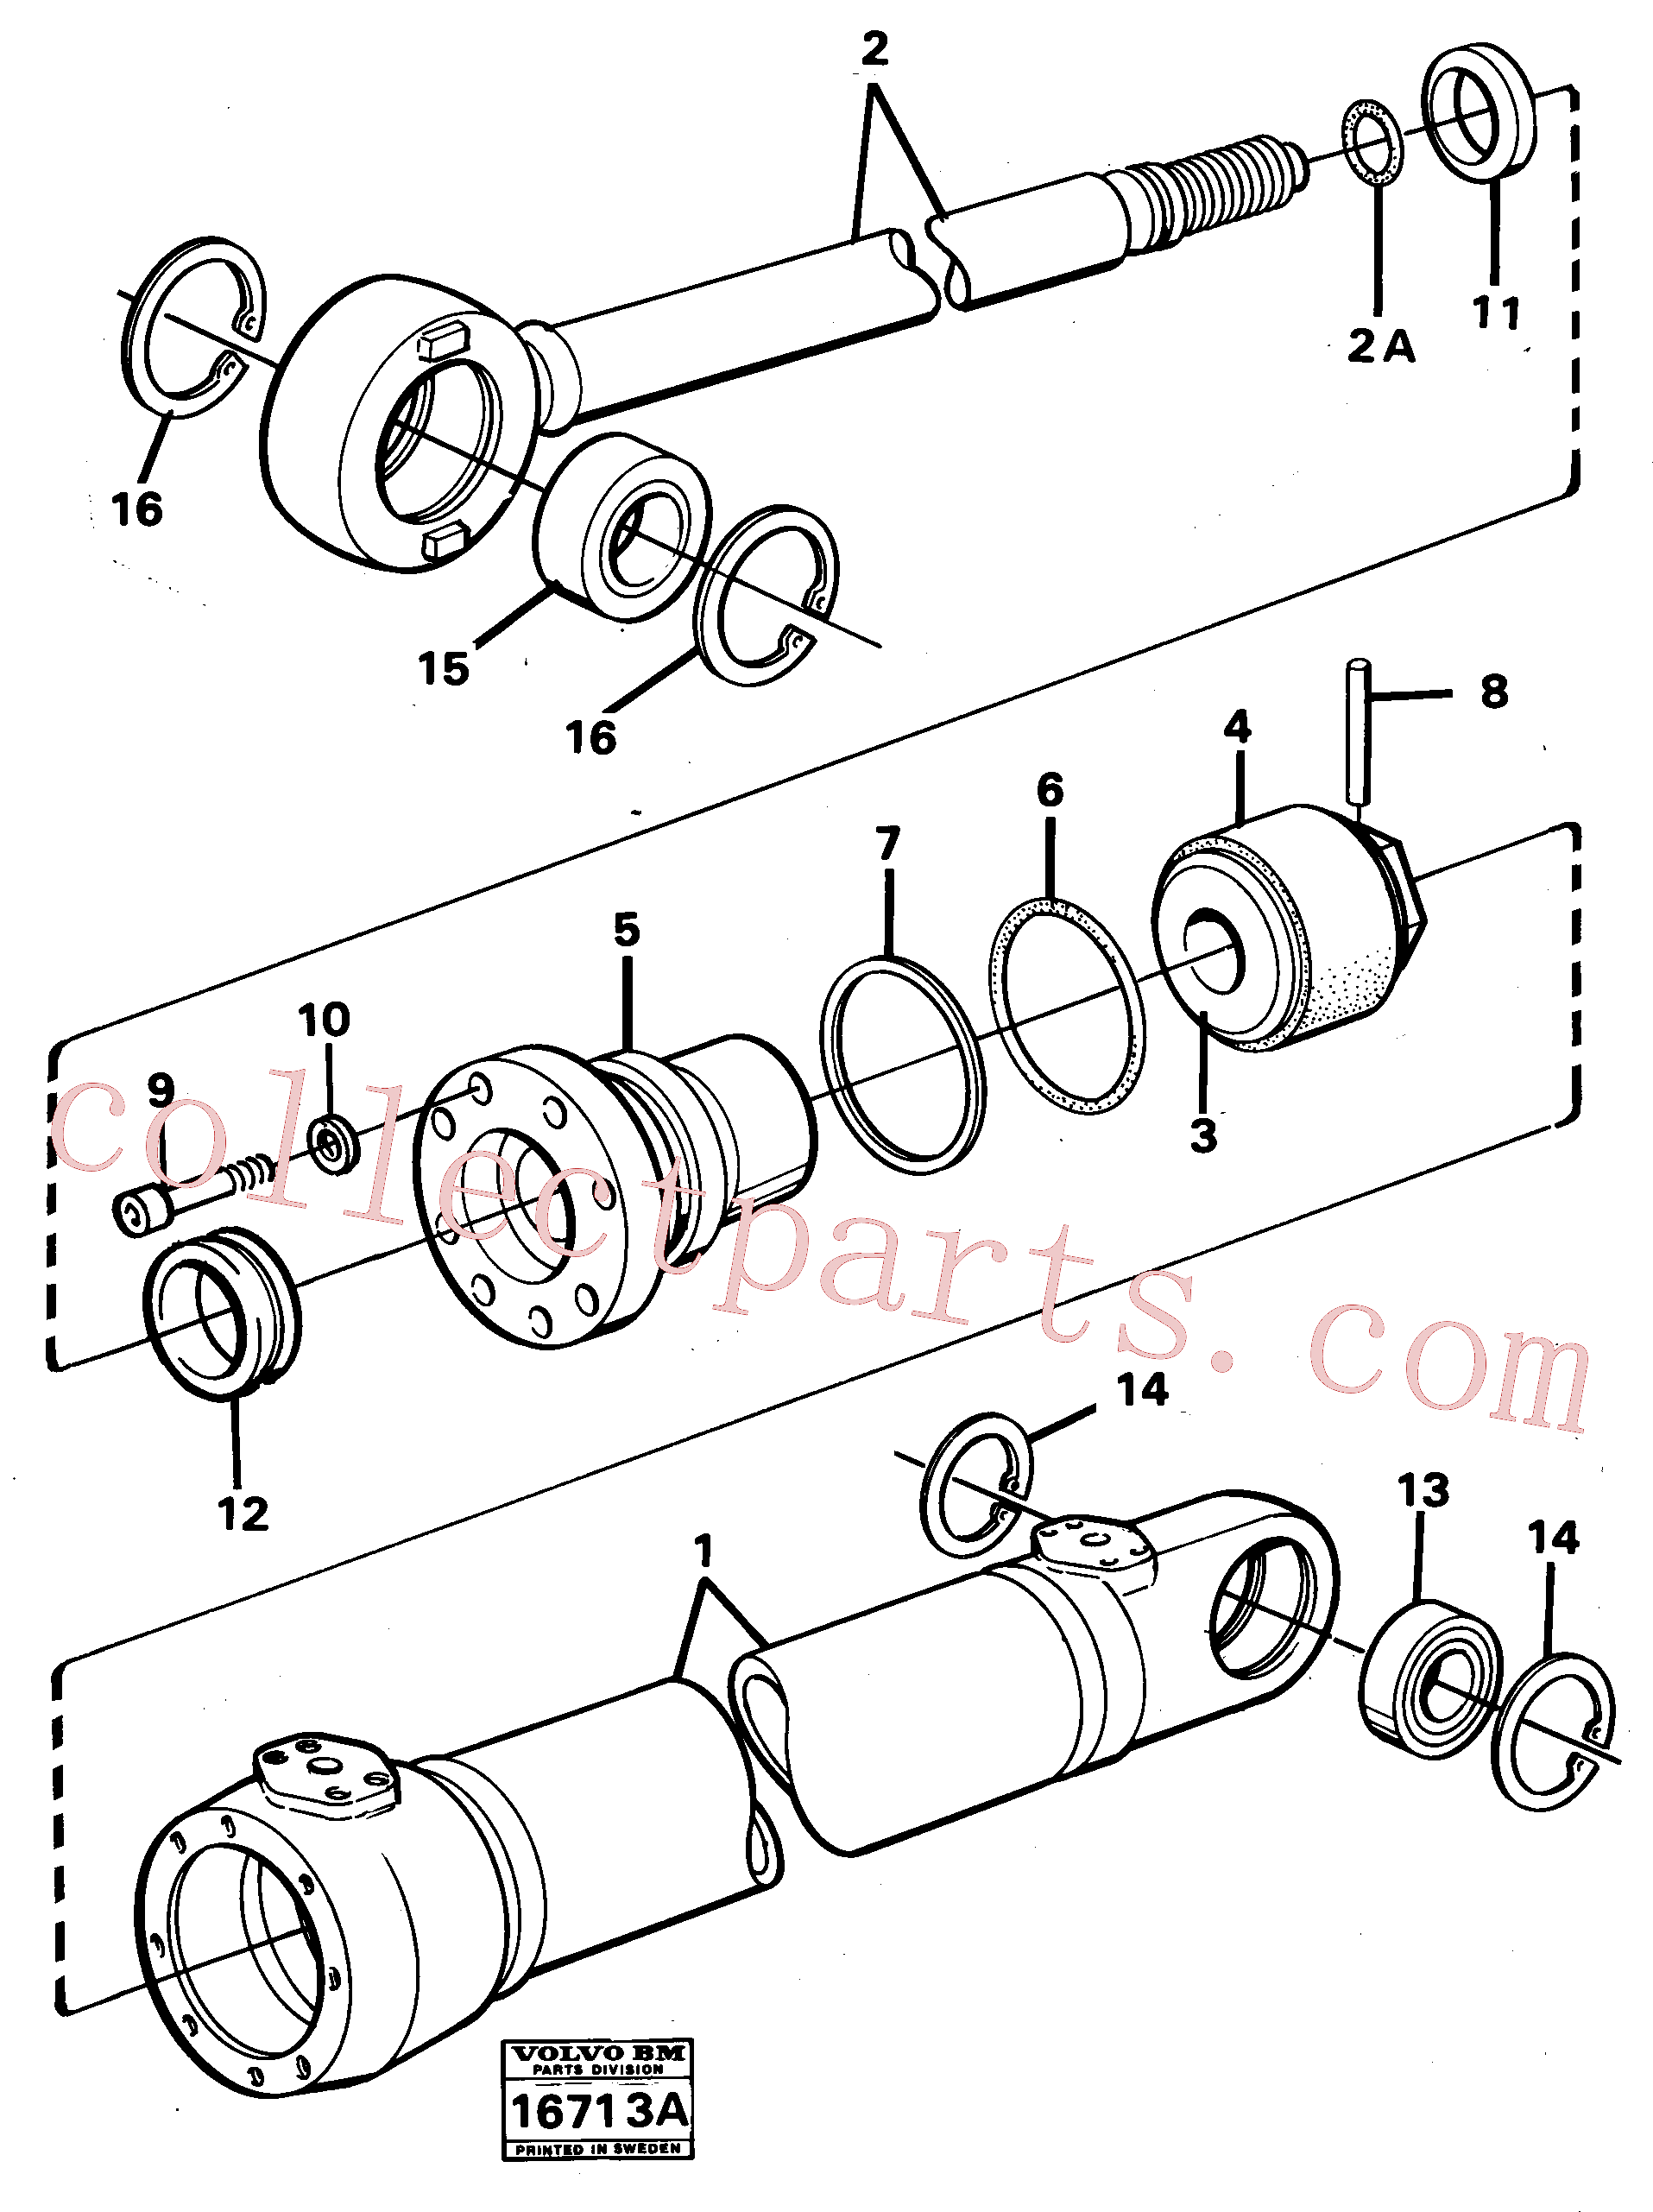 VOE13960227 for Volvo Hydraulic cylinder(16713A assembly)